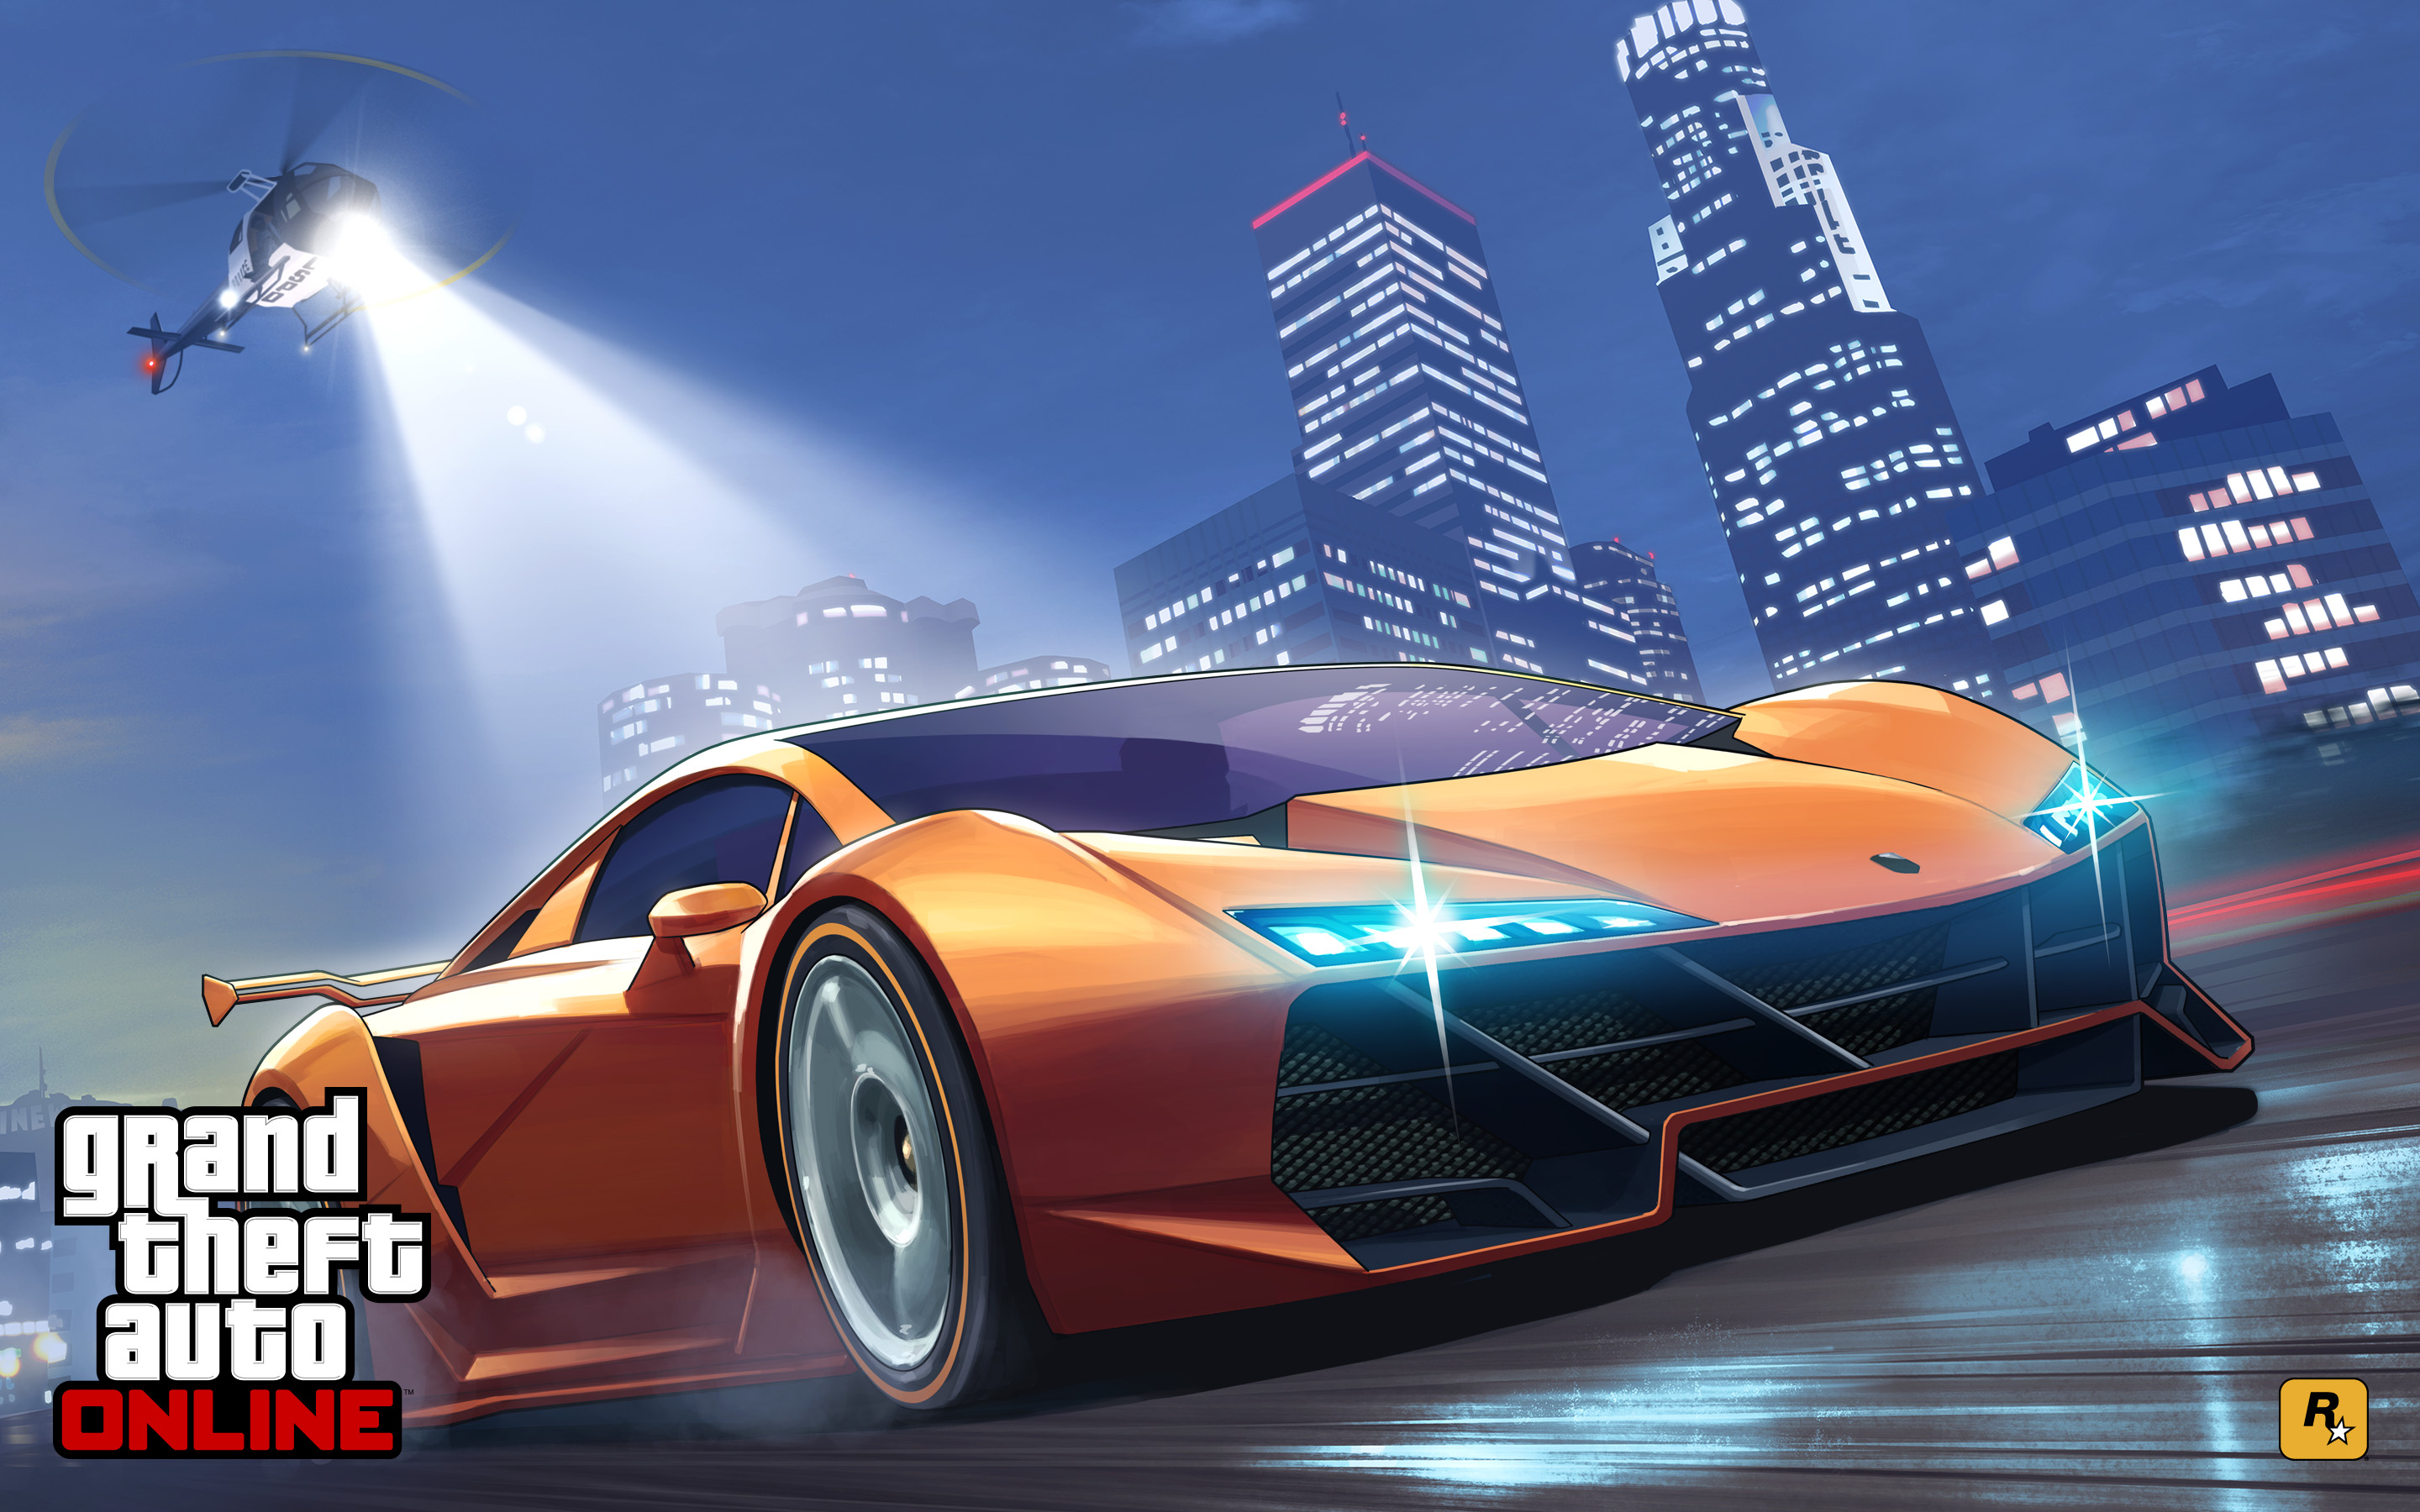 Grand Theft Auto Online 2015 Wallpapers HD Wallpapers 2880x1800